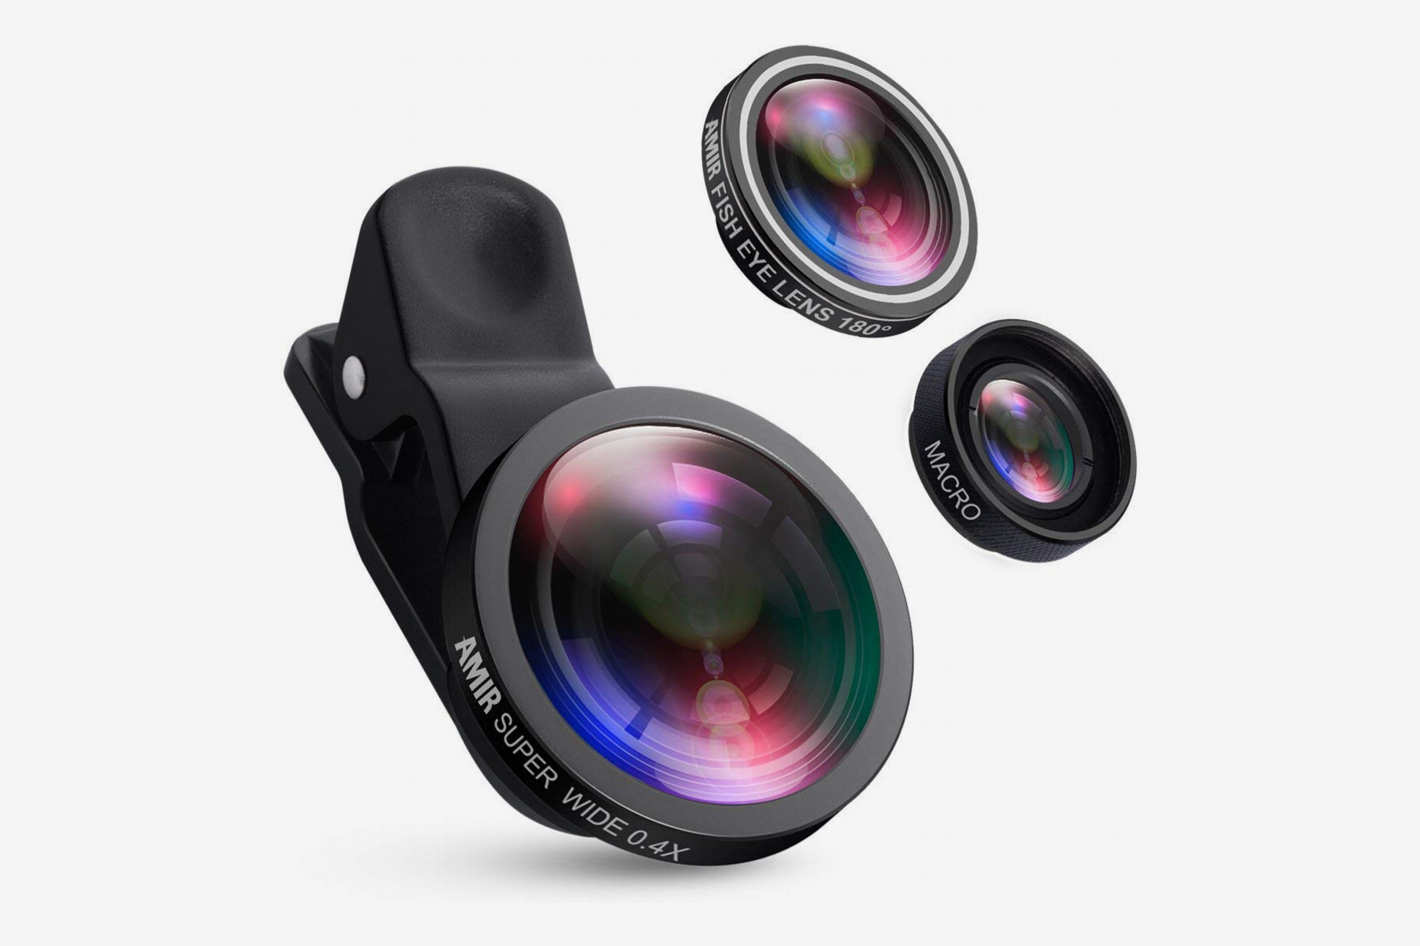 AMIR for iPhone Lens, 0.4X Wide Angle Lens + 180°Fisheye Lens & 10X Macro Lens, Clip on Cell Phone Lens for iPhone